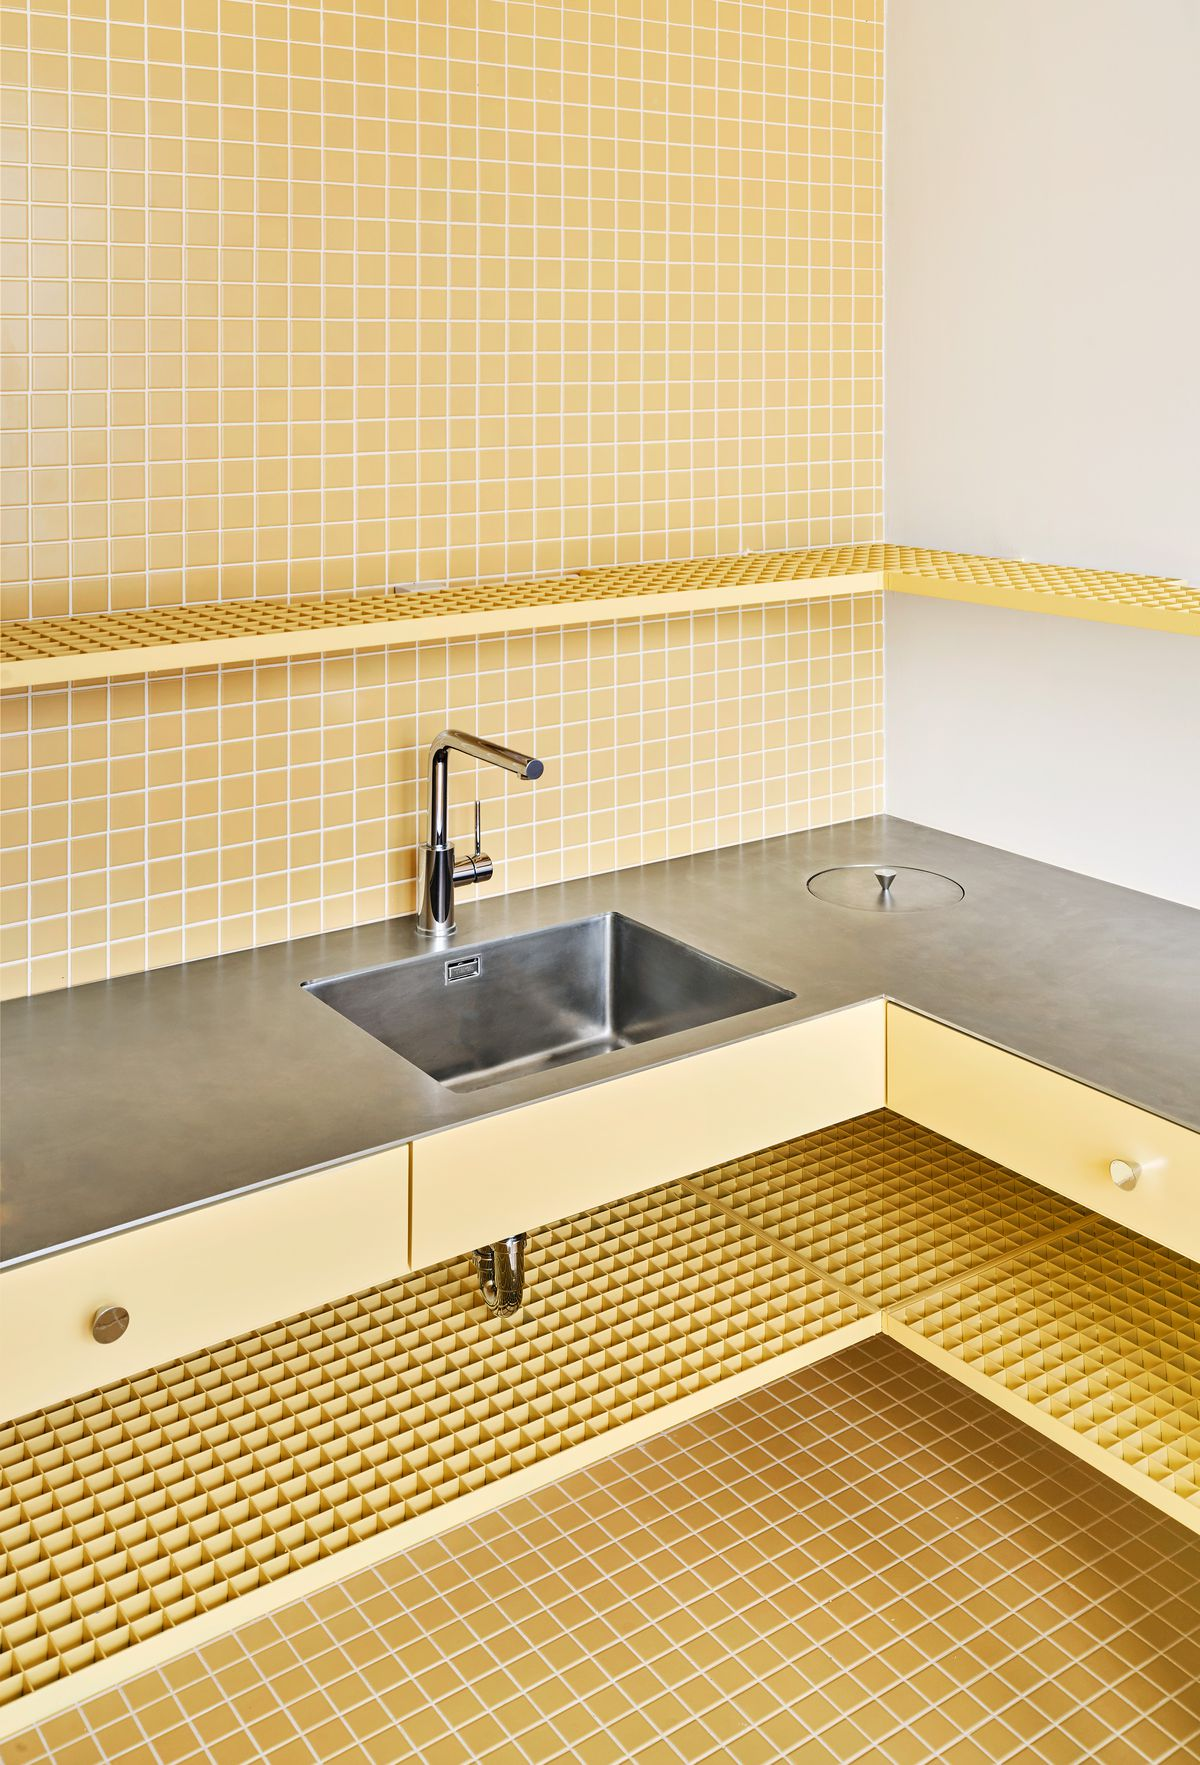 Kitchen with yellow tile and drawers and metal sink and counters.